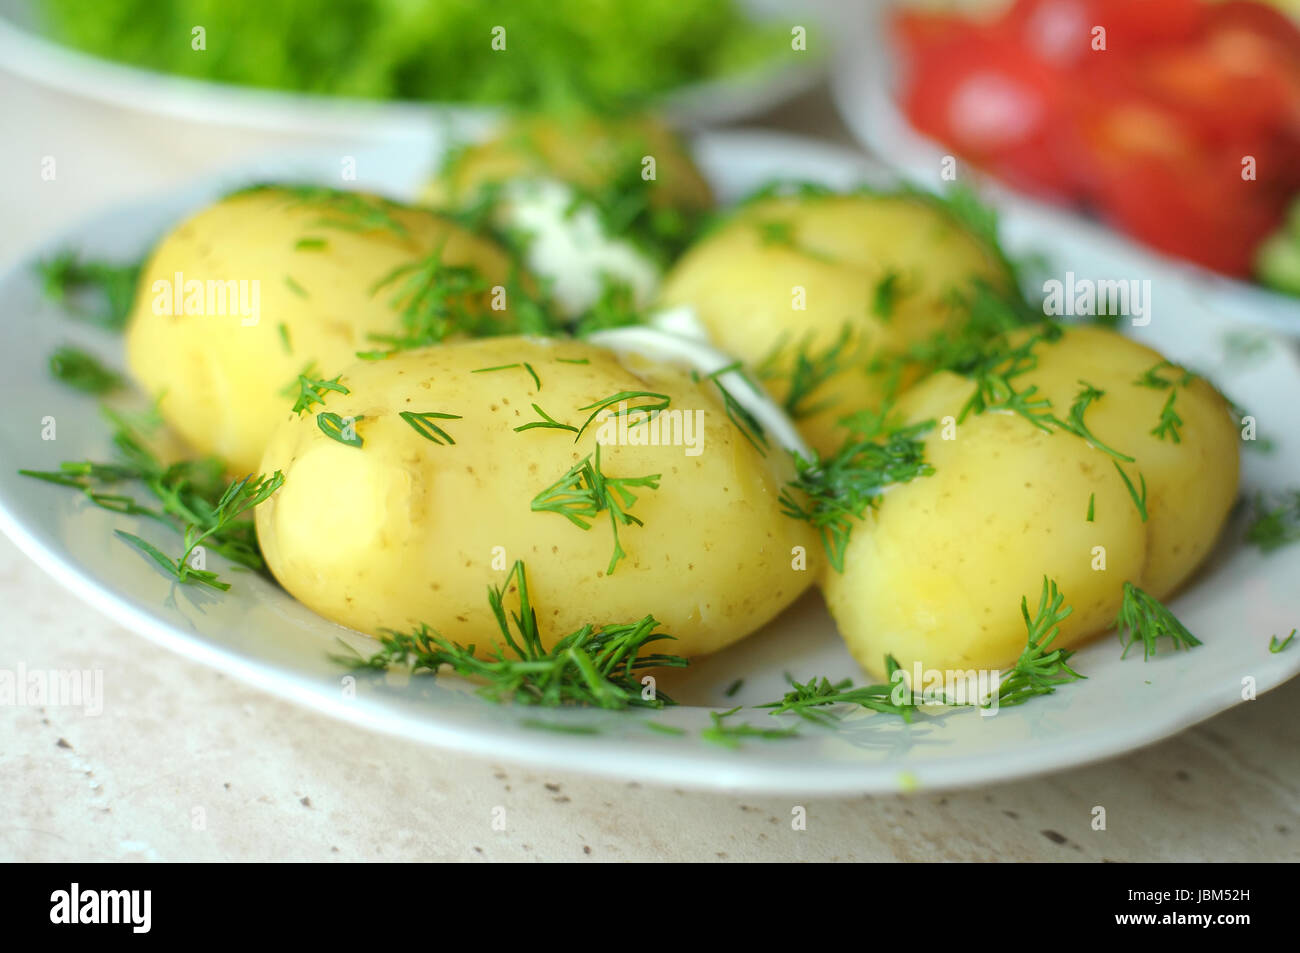 Fresh organic vegetables and boiled new potatoes on the plates on the wooden table. Close up, selective focus. - Stock Image